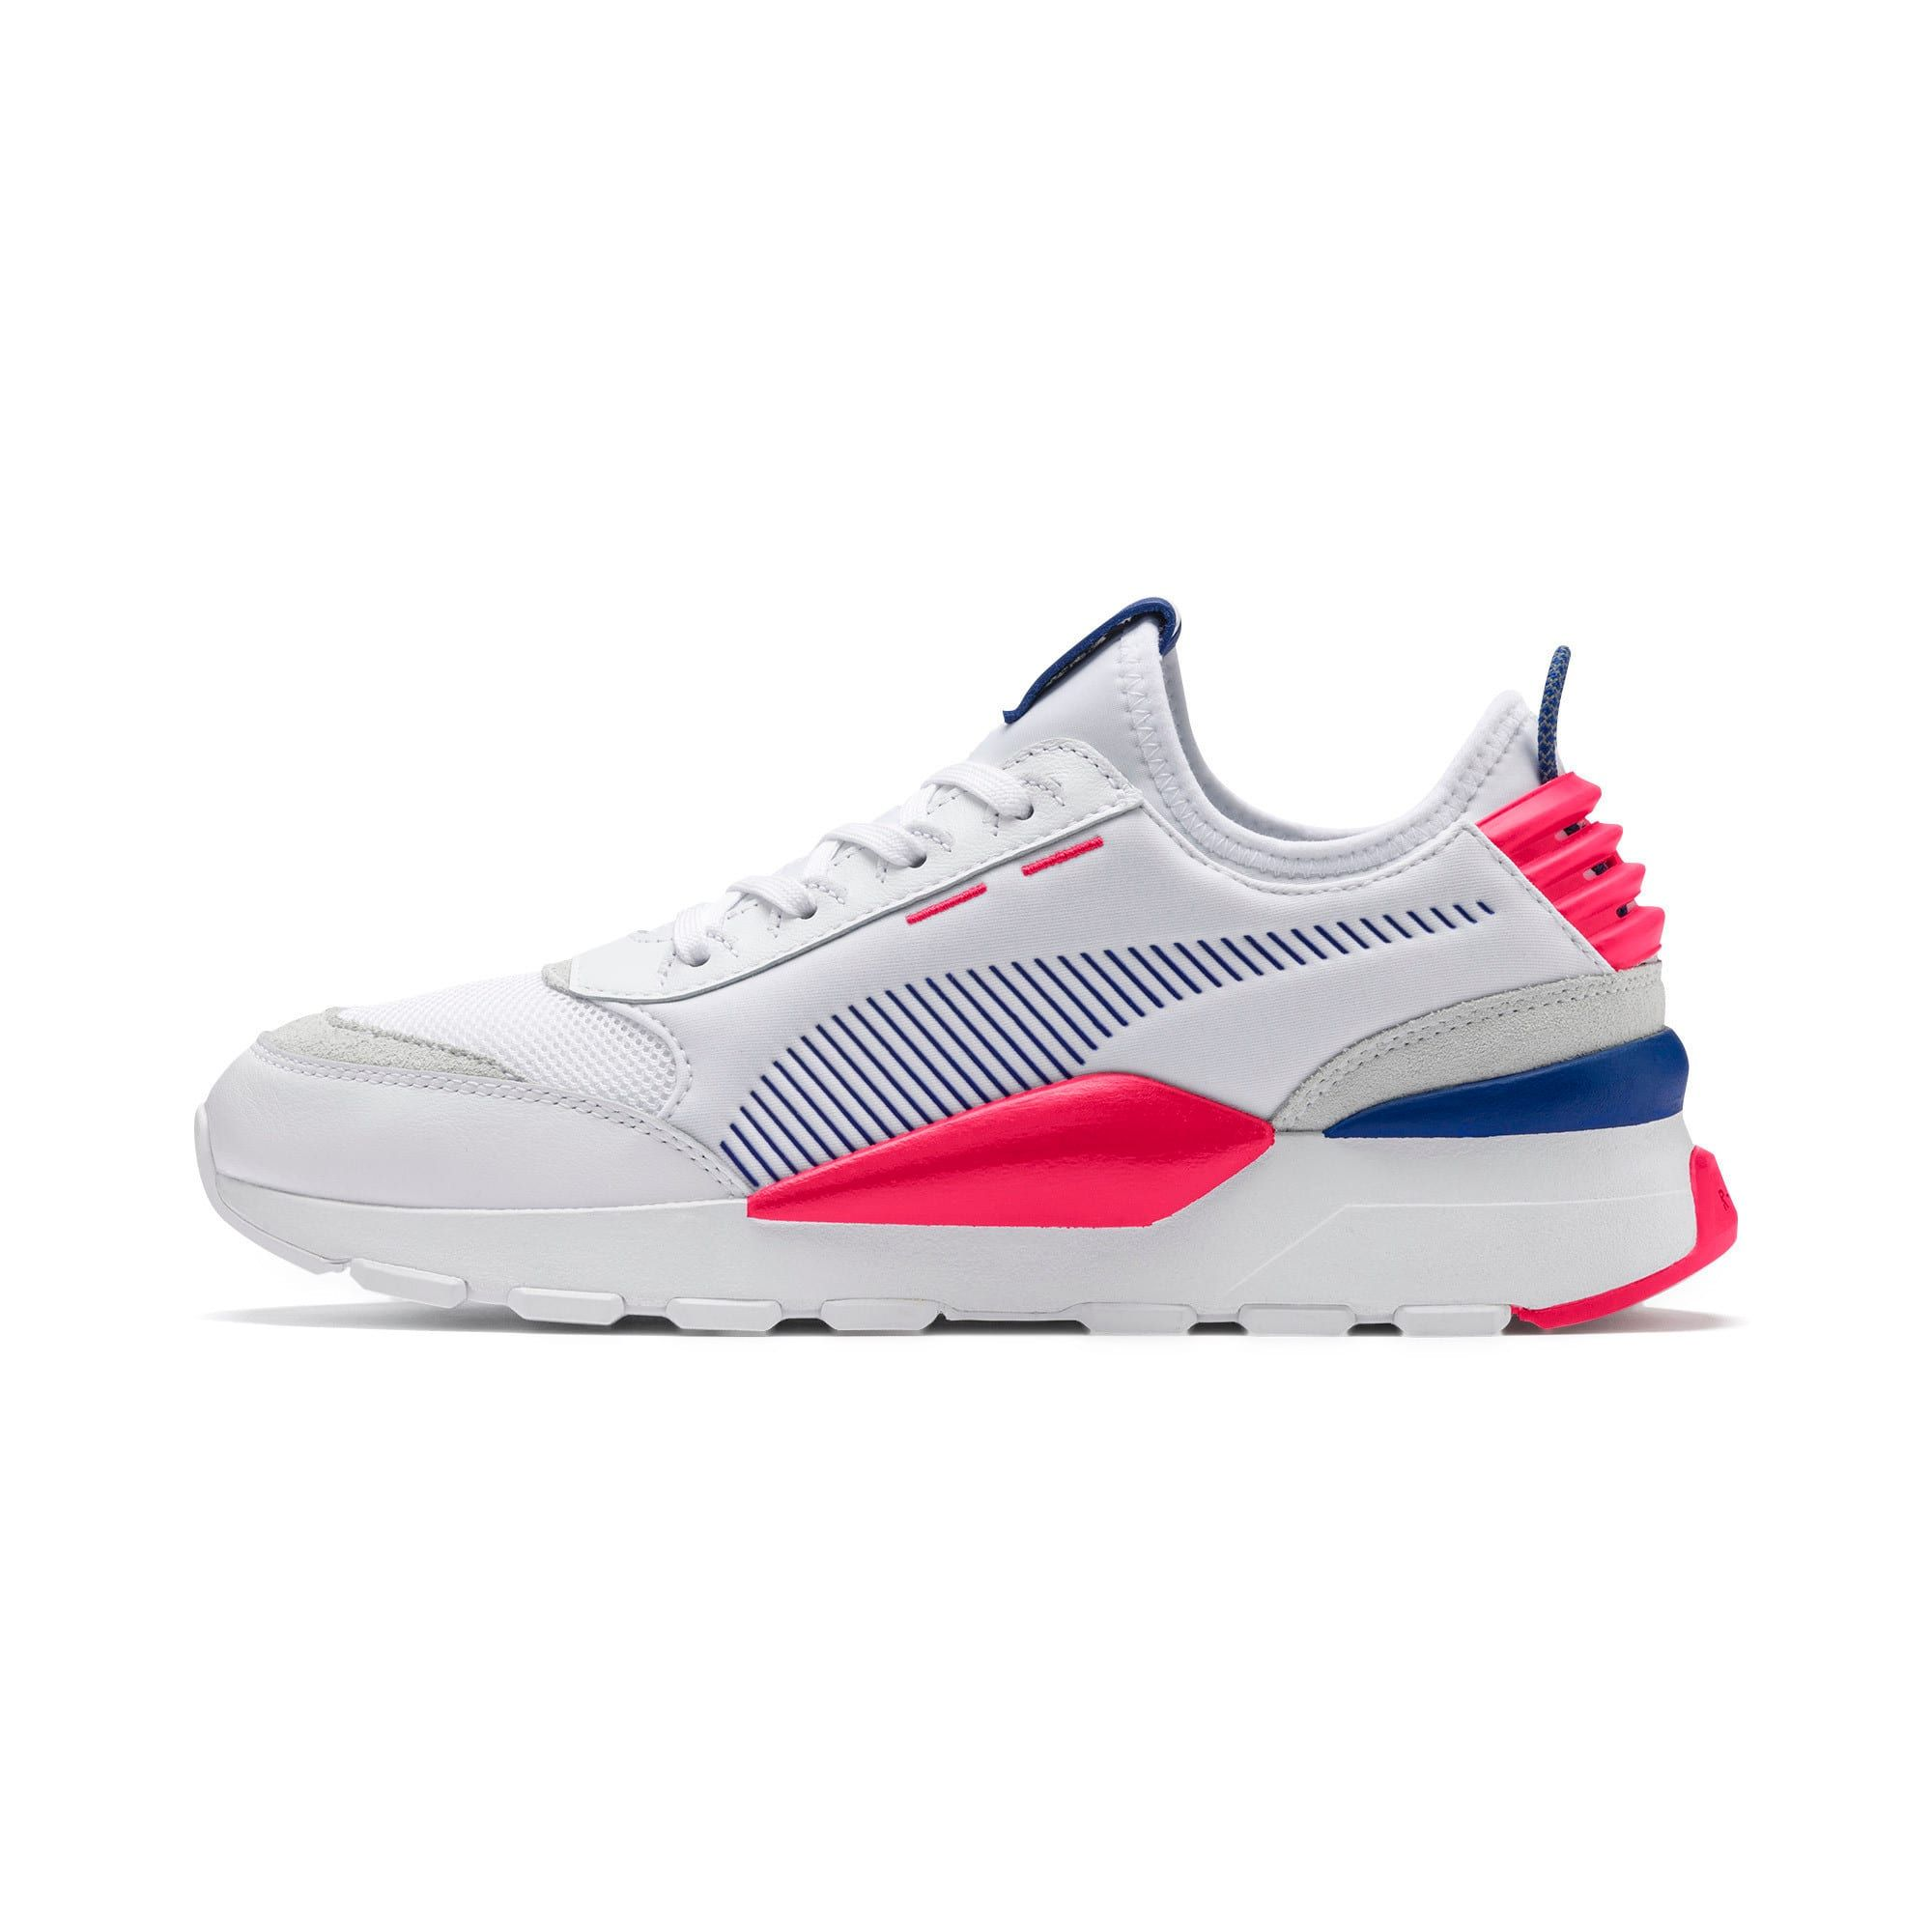 Rs 0 Core Trainers In 2020 Rose Gold Shoes Pumas Shoes Air Max